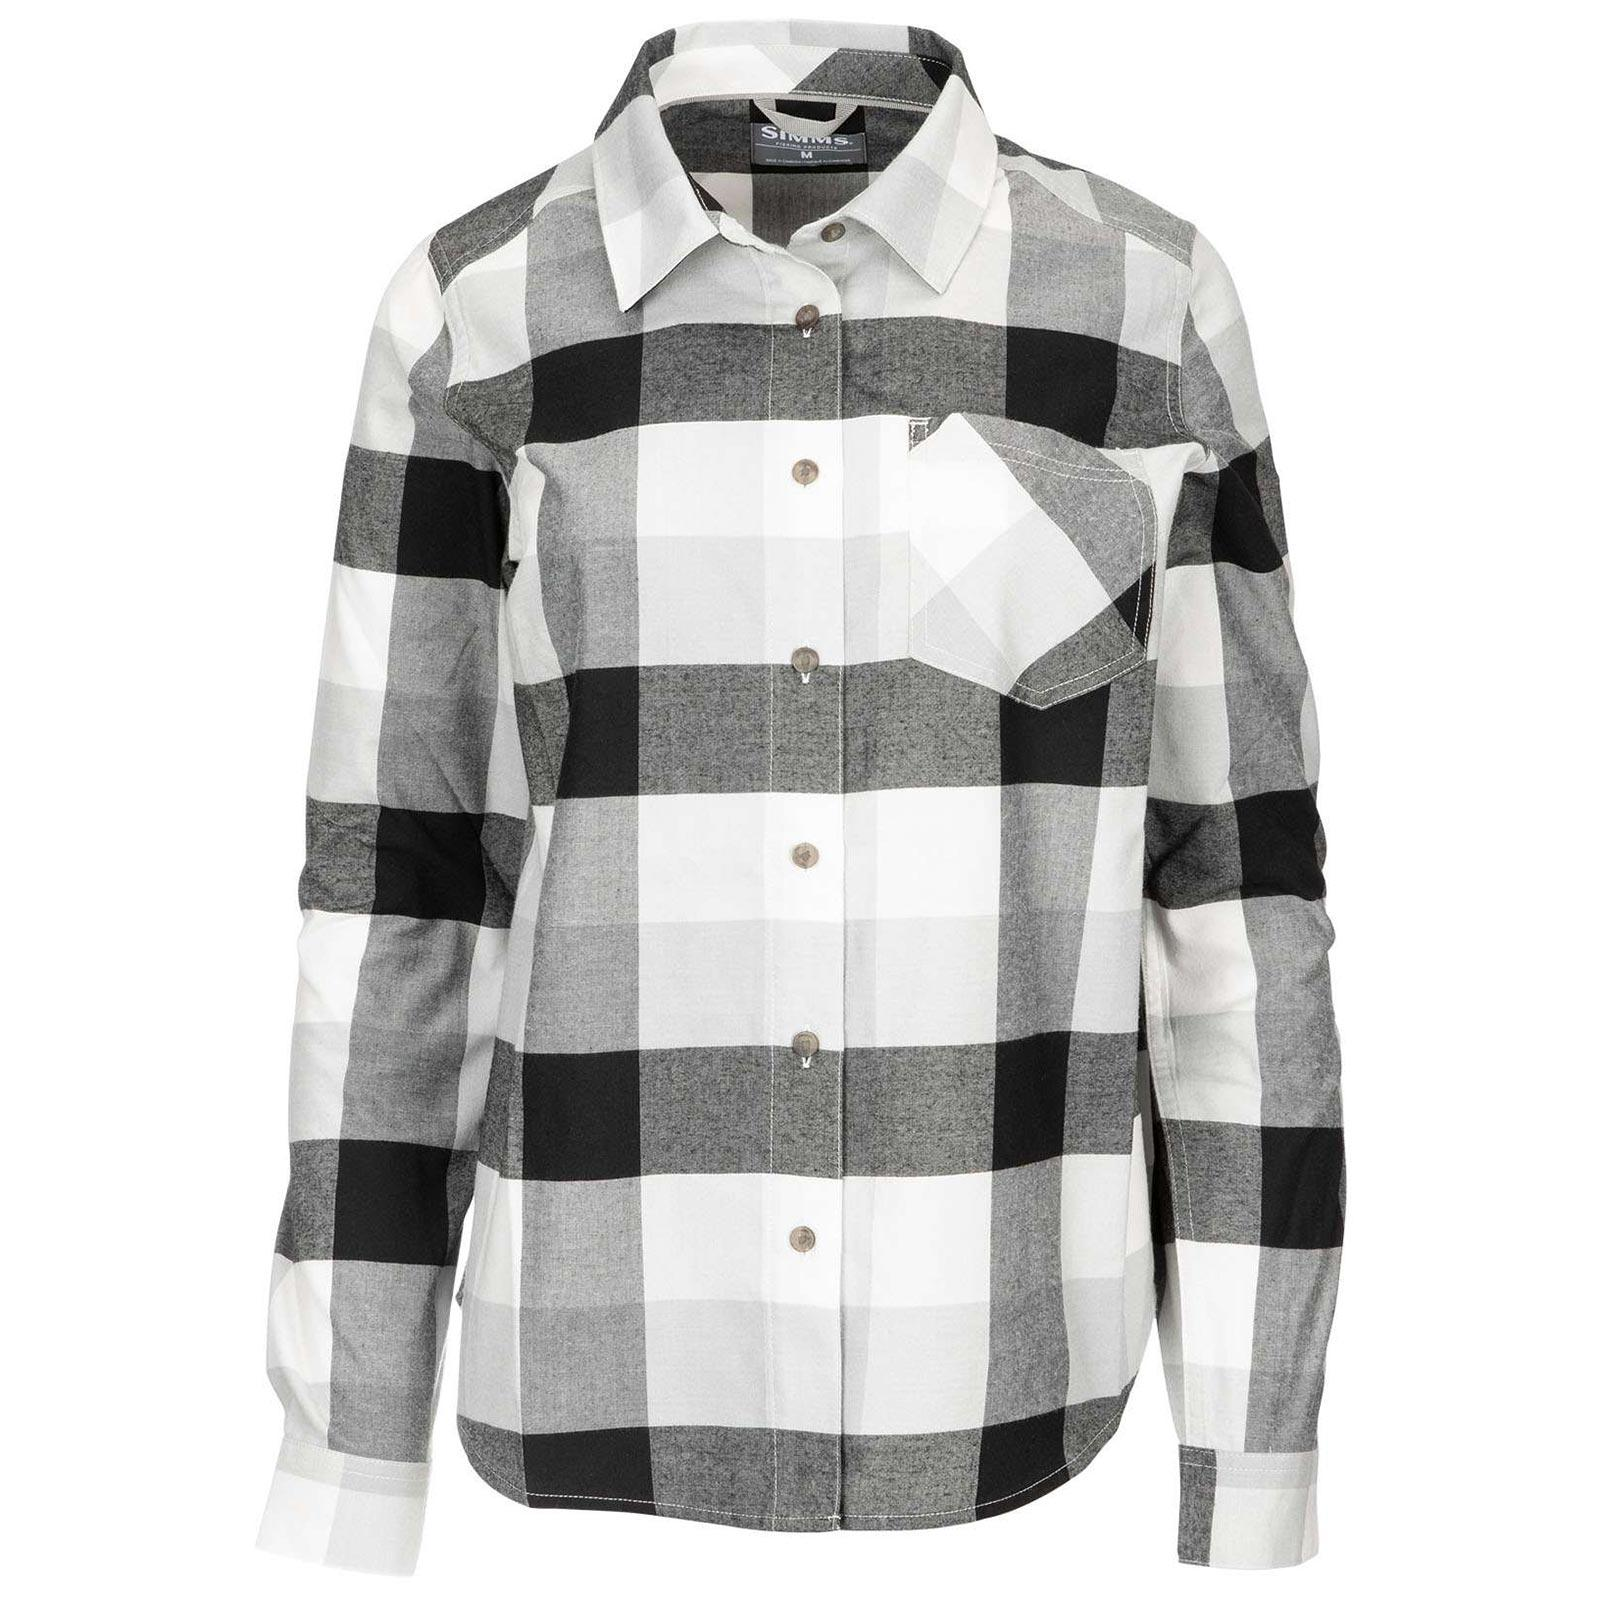 Grey Heather Buffalo Plaid